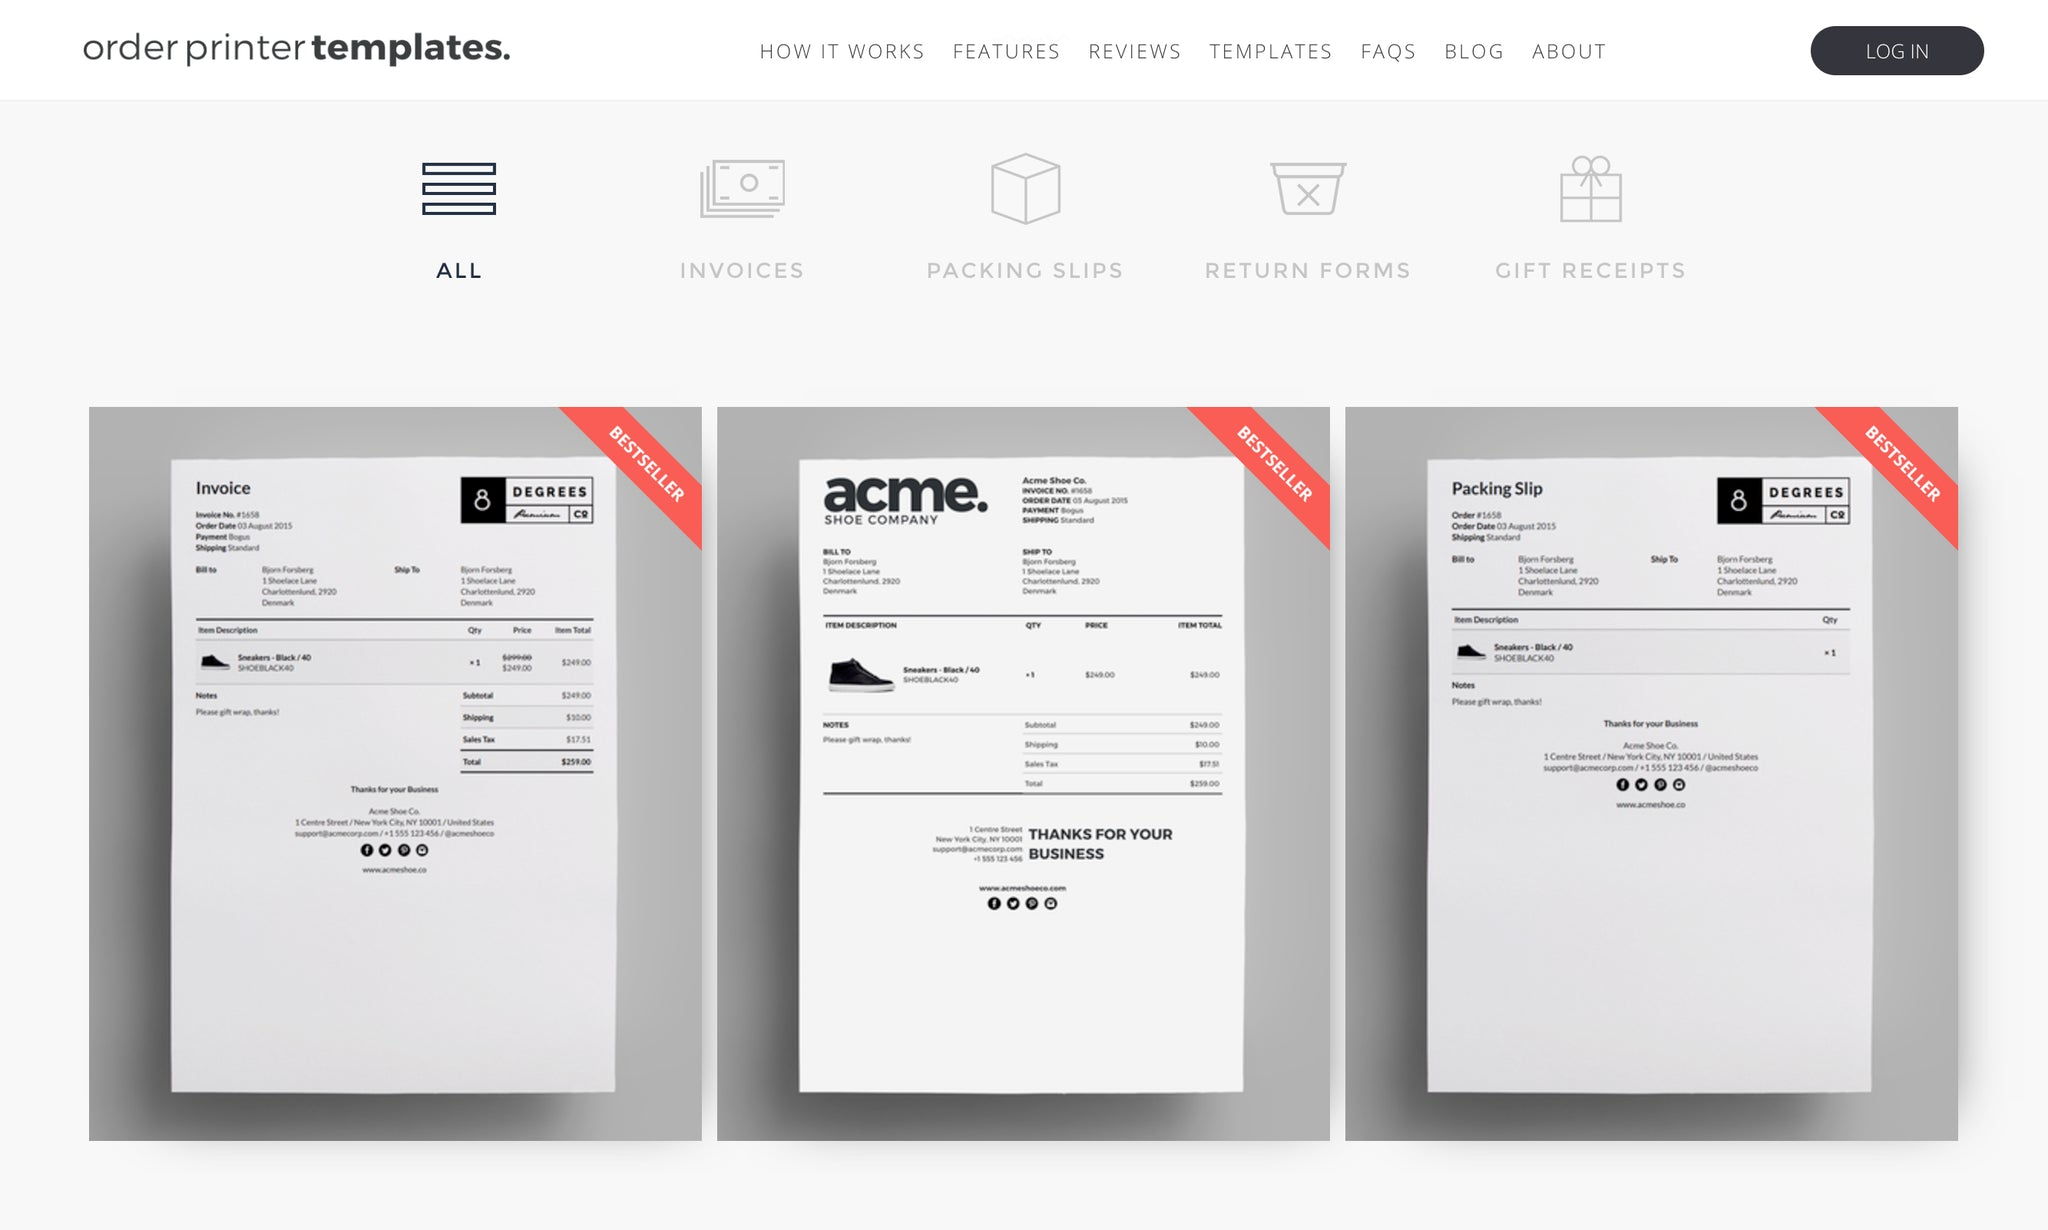 Enterprise Toll Receipt Excel Invoices In Shopify  The Definitive Guide  Shopify  You Free Sample Invoice Template Word Excel with Payment Receipt Format  Used In The Invoices Its A Good Basic App However There Are  Limitations The Templates Are Pretty Ugly You Require Html Skills To  Improve Them  Invoice Law